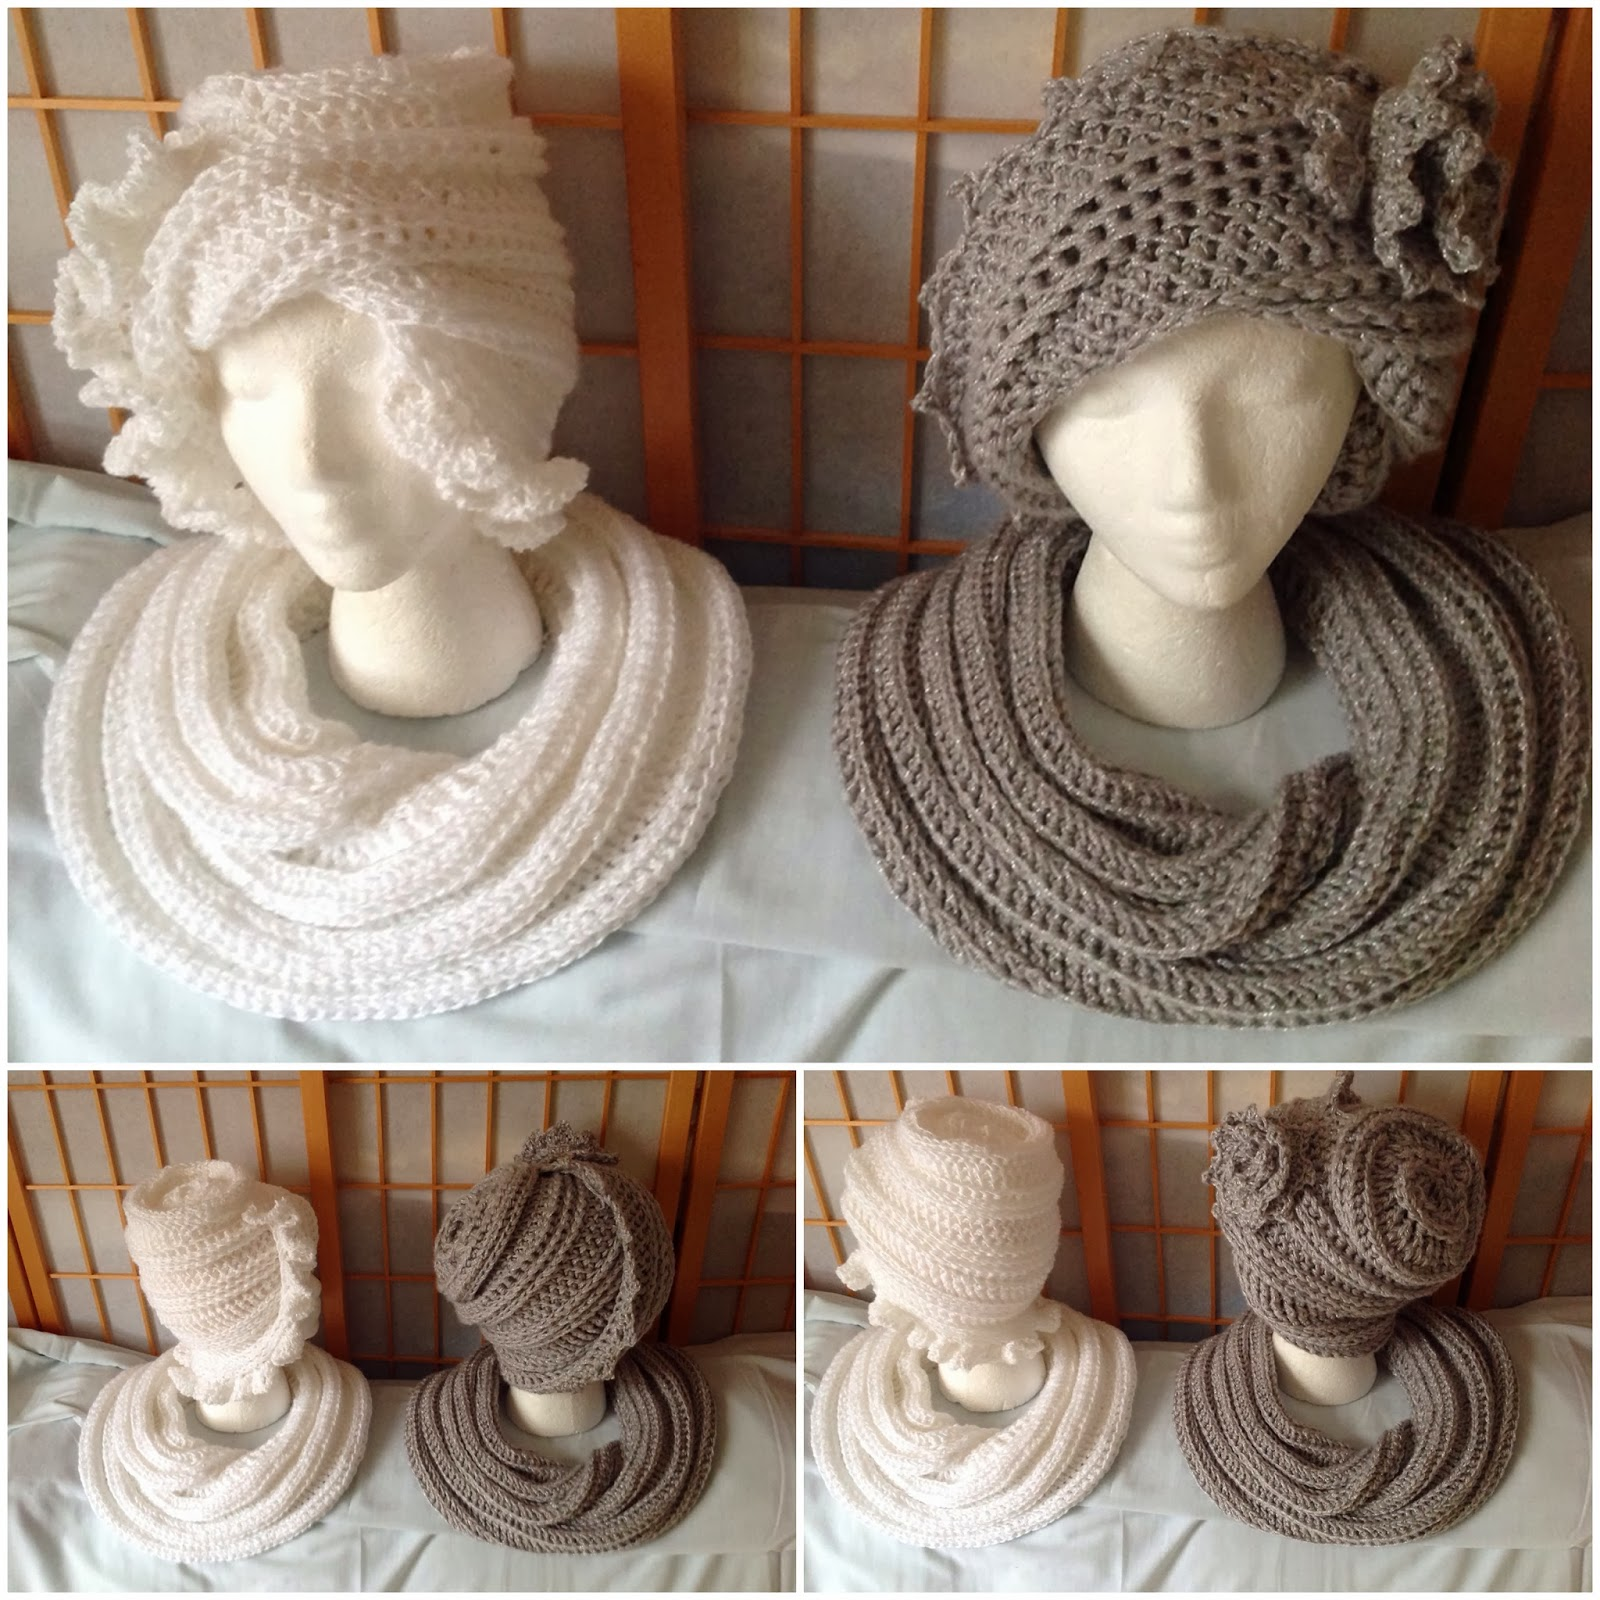 The Crochet LAUREN Cloche and CYNTHIA Beanie Hat with the SNAKE Infinity Scarf made by Yvonne